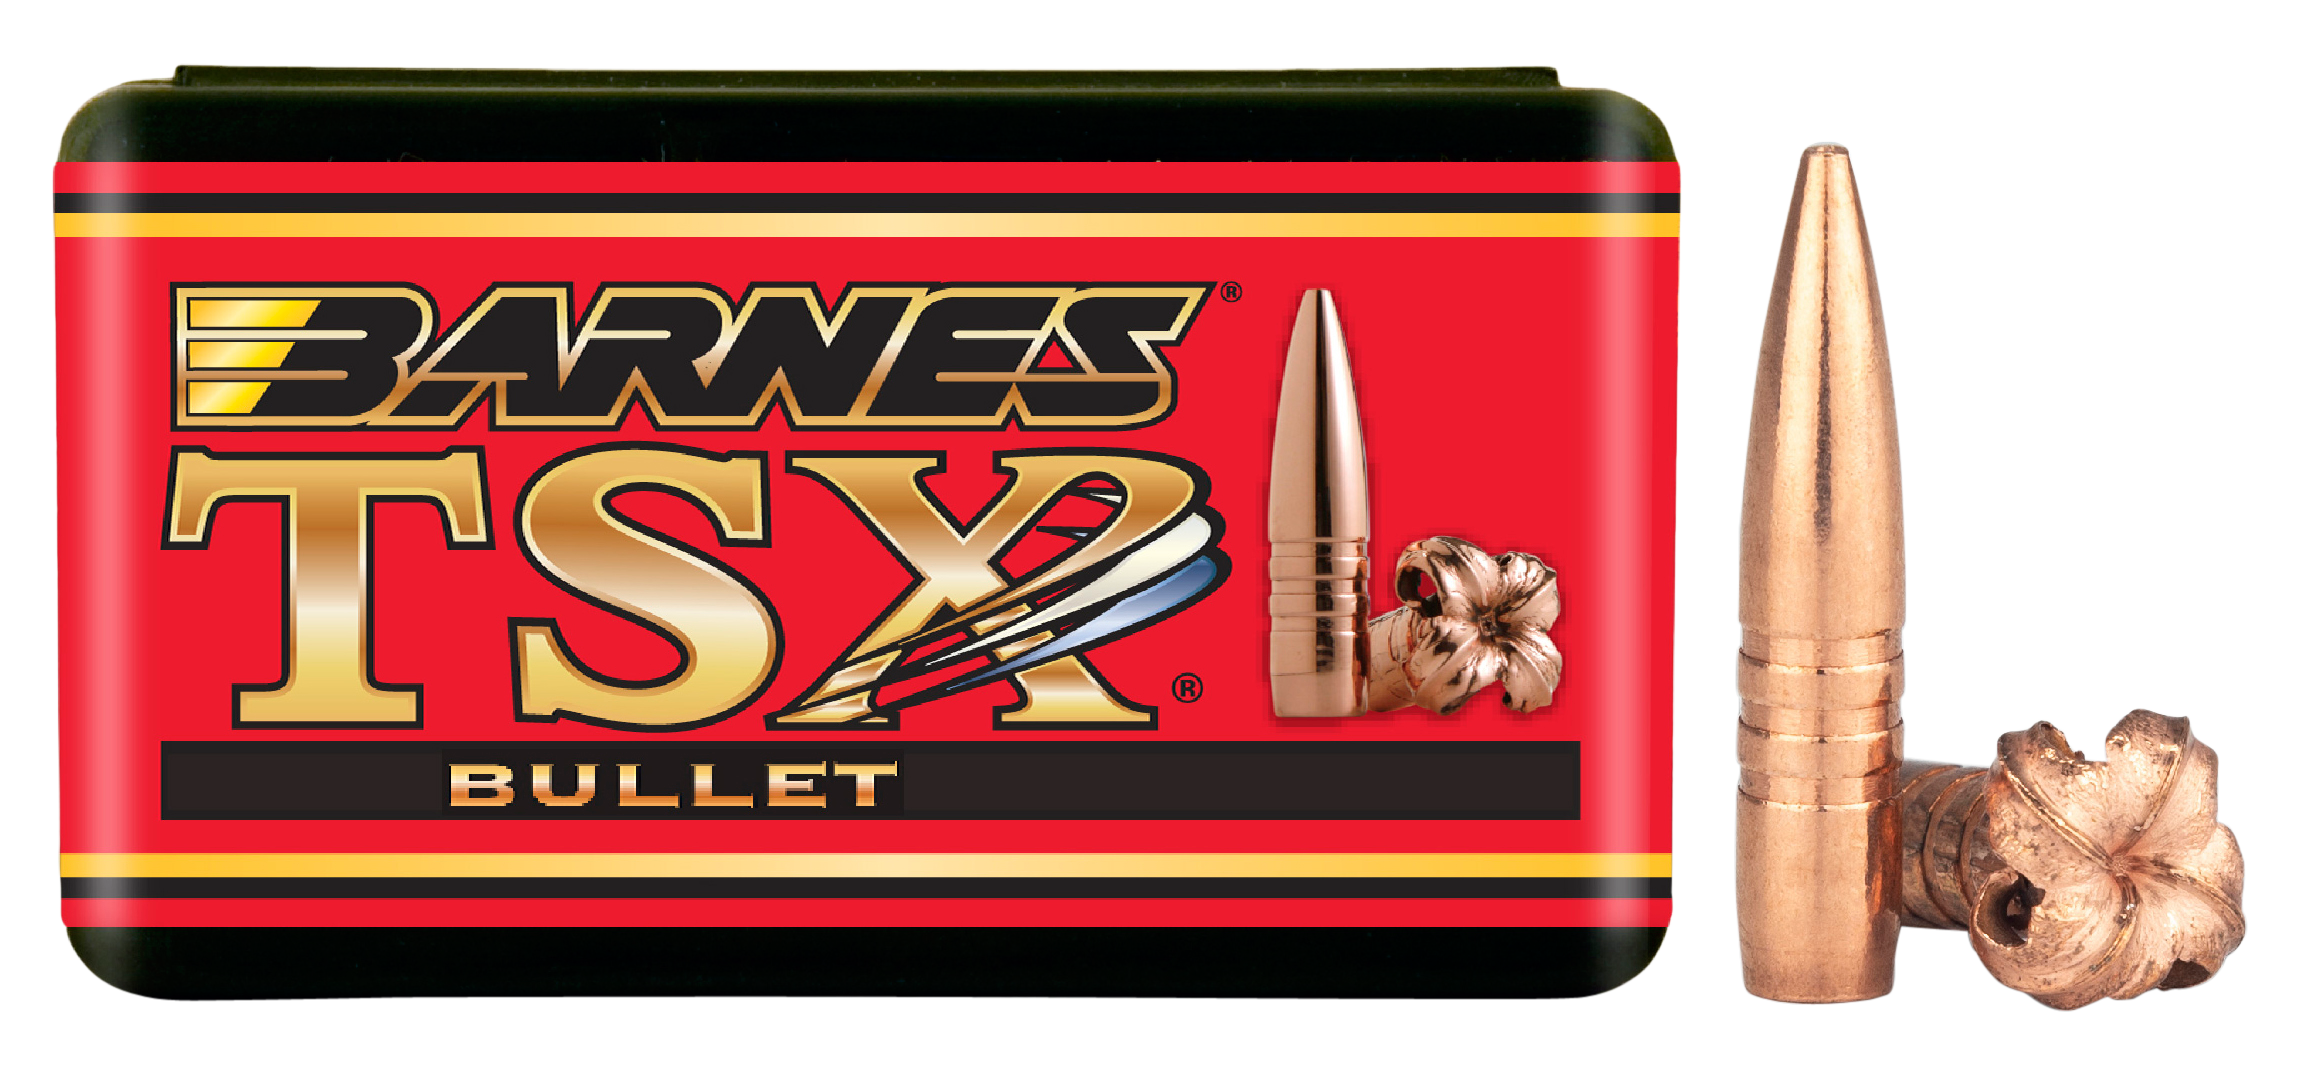 Barnes Bullets 22441 Rifle 22 Caliber .224 45 GR TSX FB 50 Box